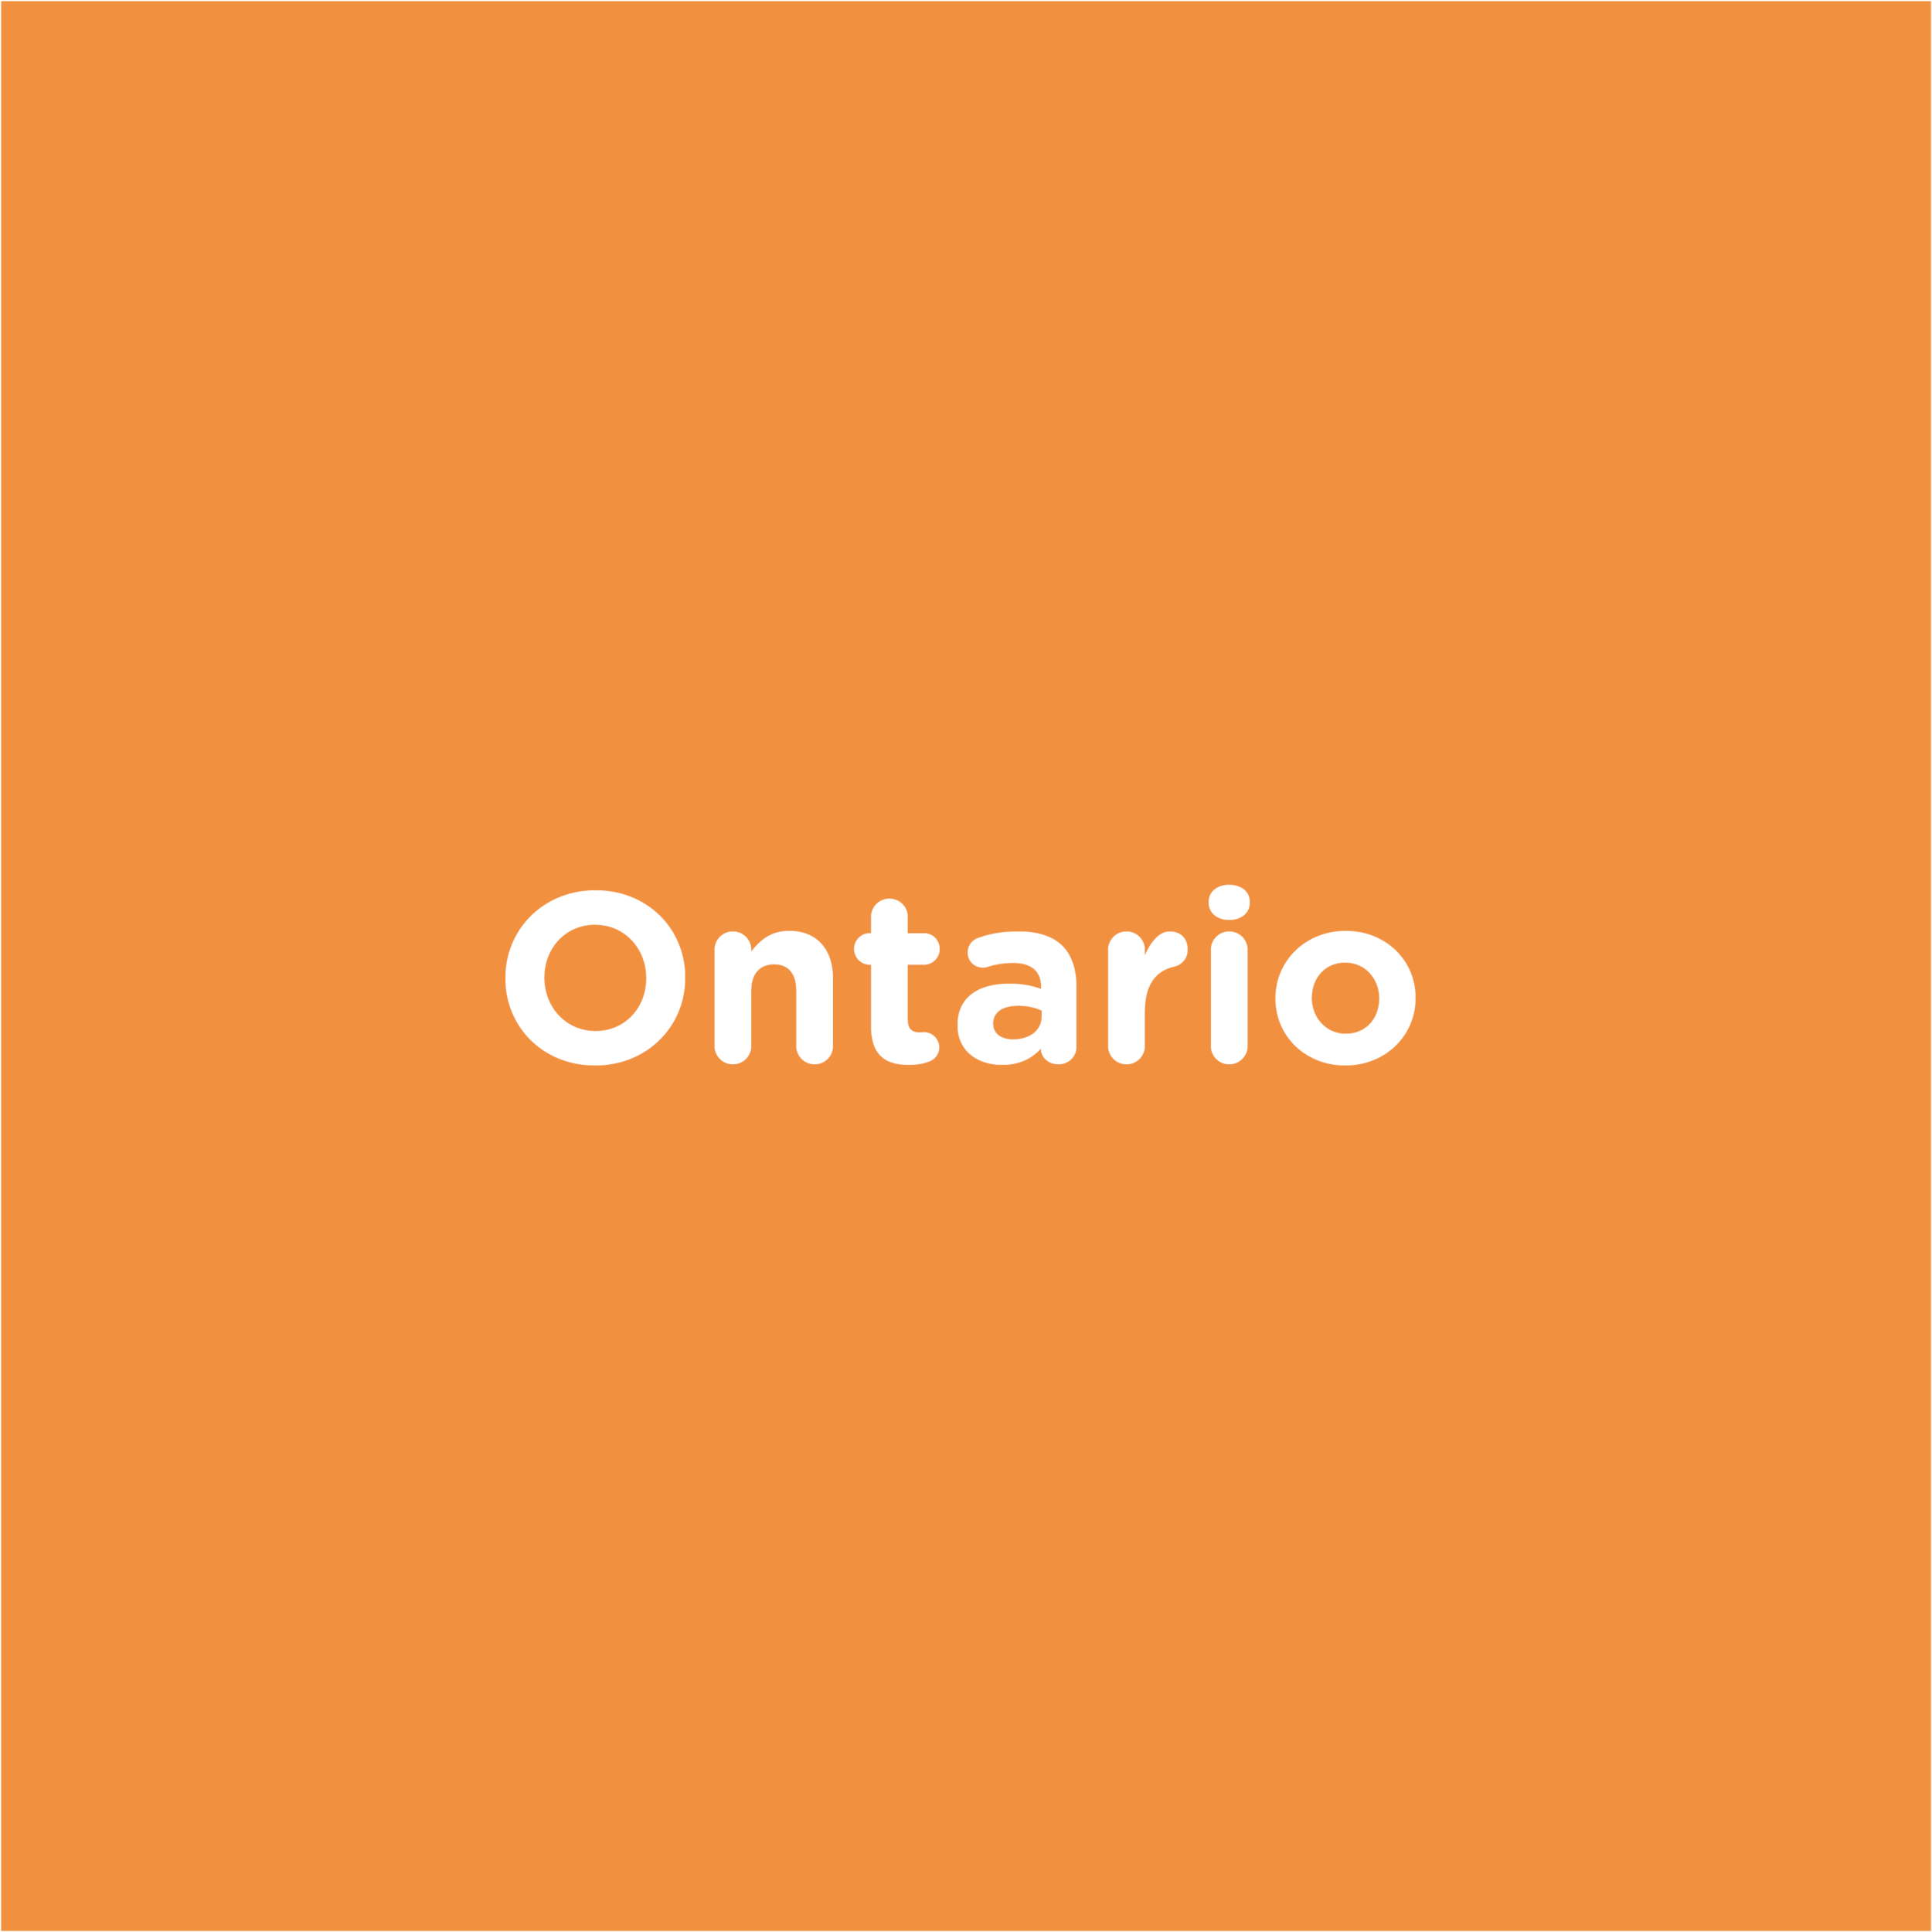 ontario.png